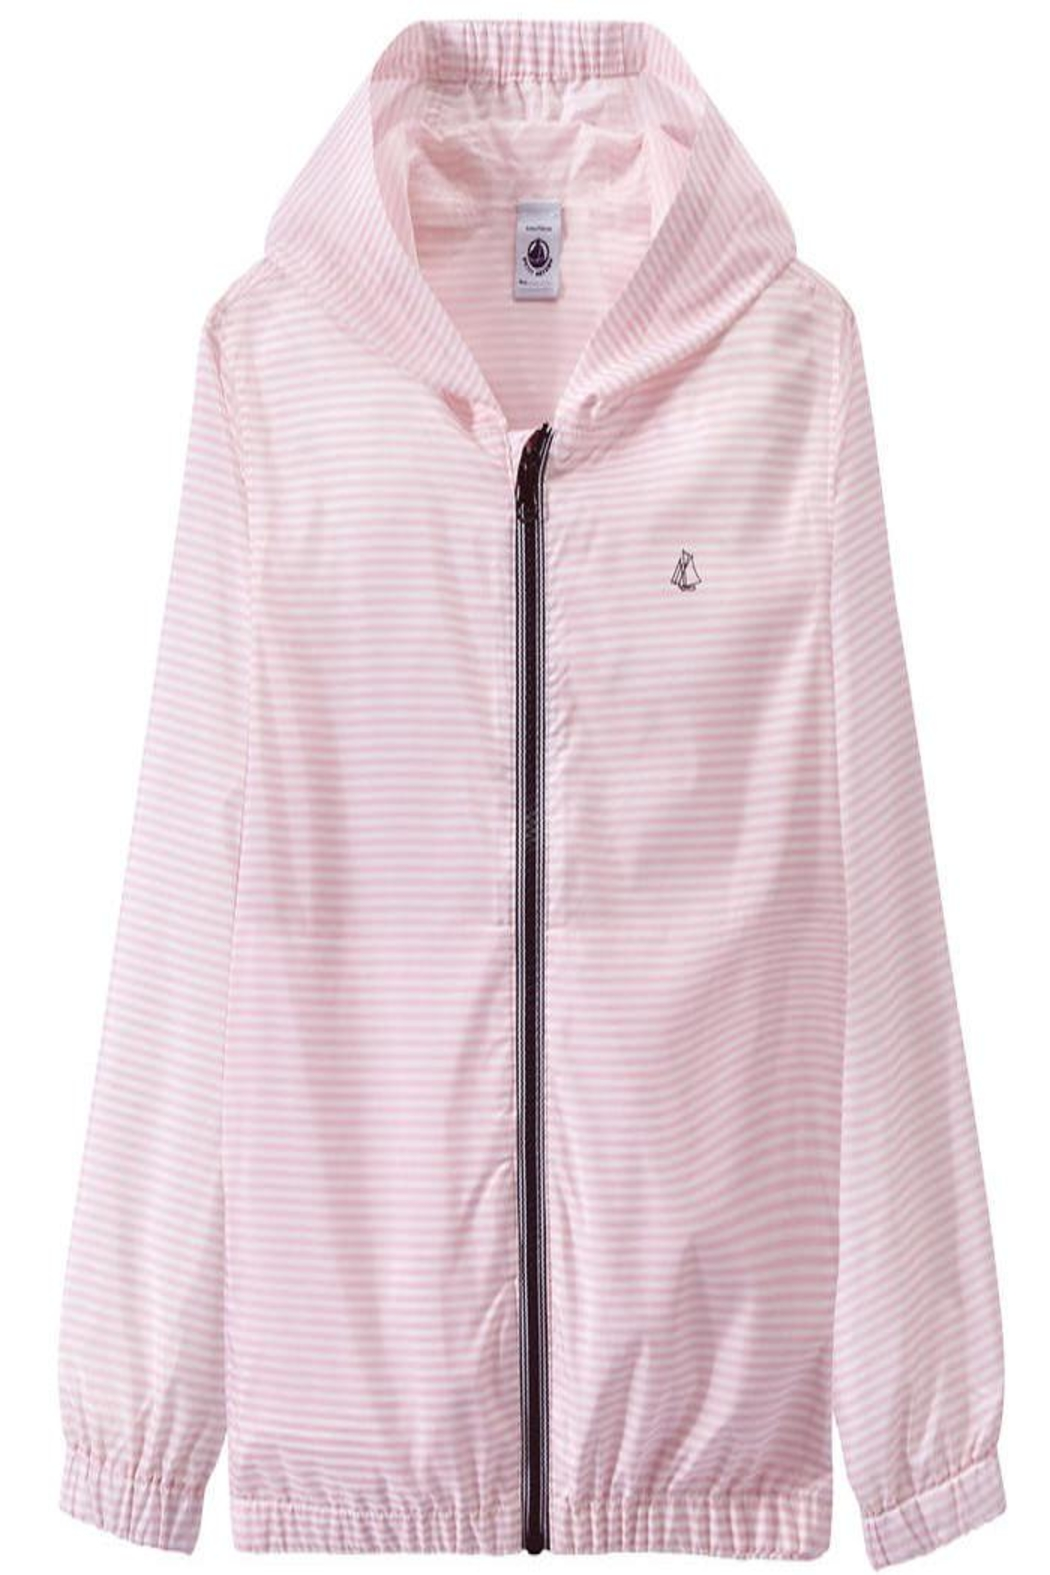 petit bateau Pink Striped Jacket - Main Image